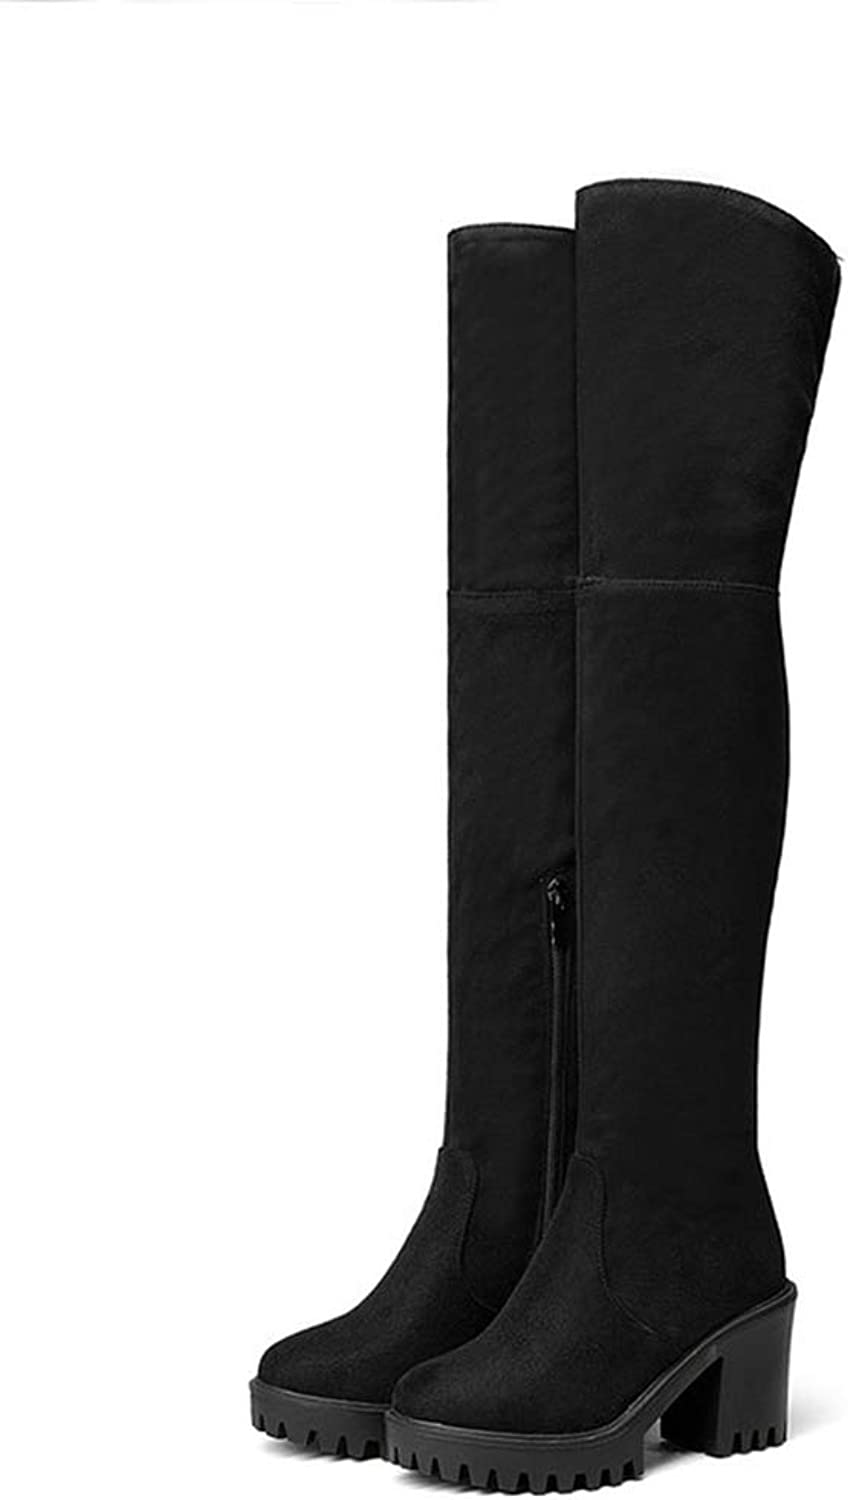 Over The Knee Boots Suede PU Fashion Round Toe Zipper Design Synthetic Solid Ladies shoes